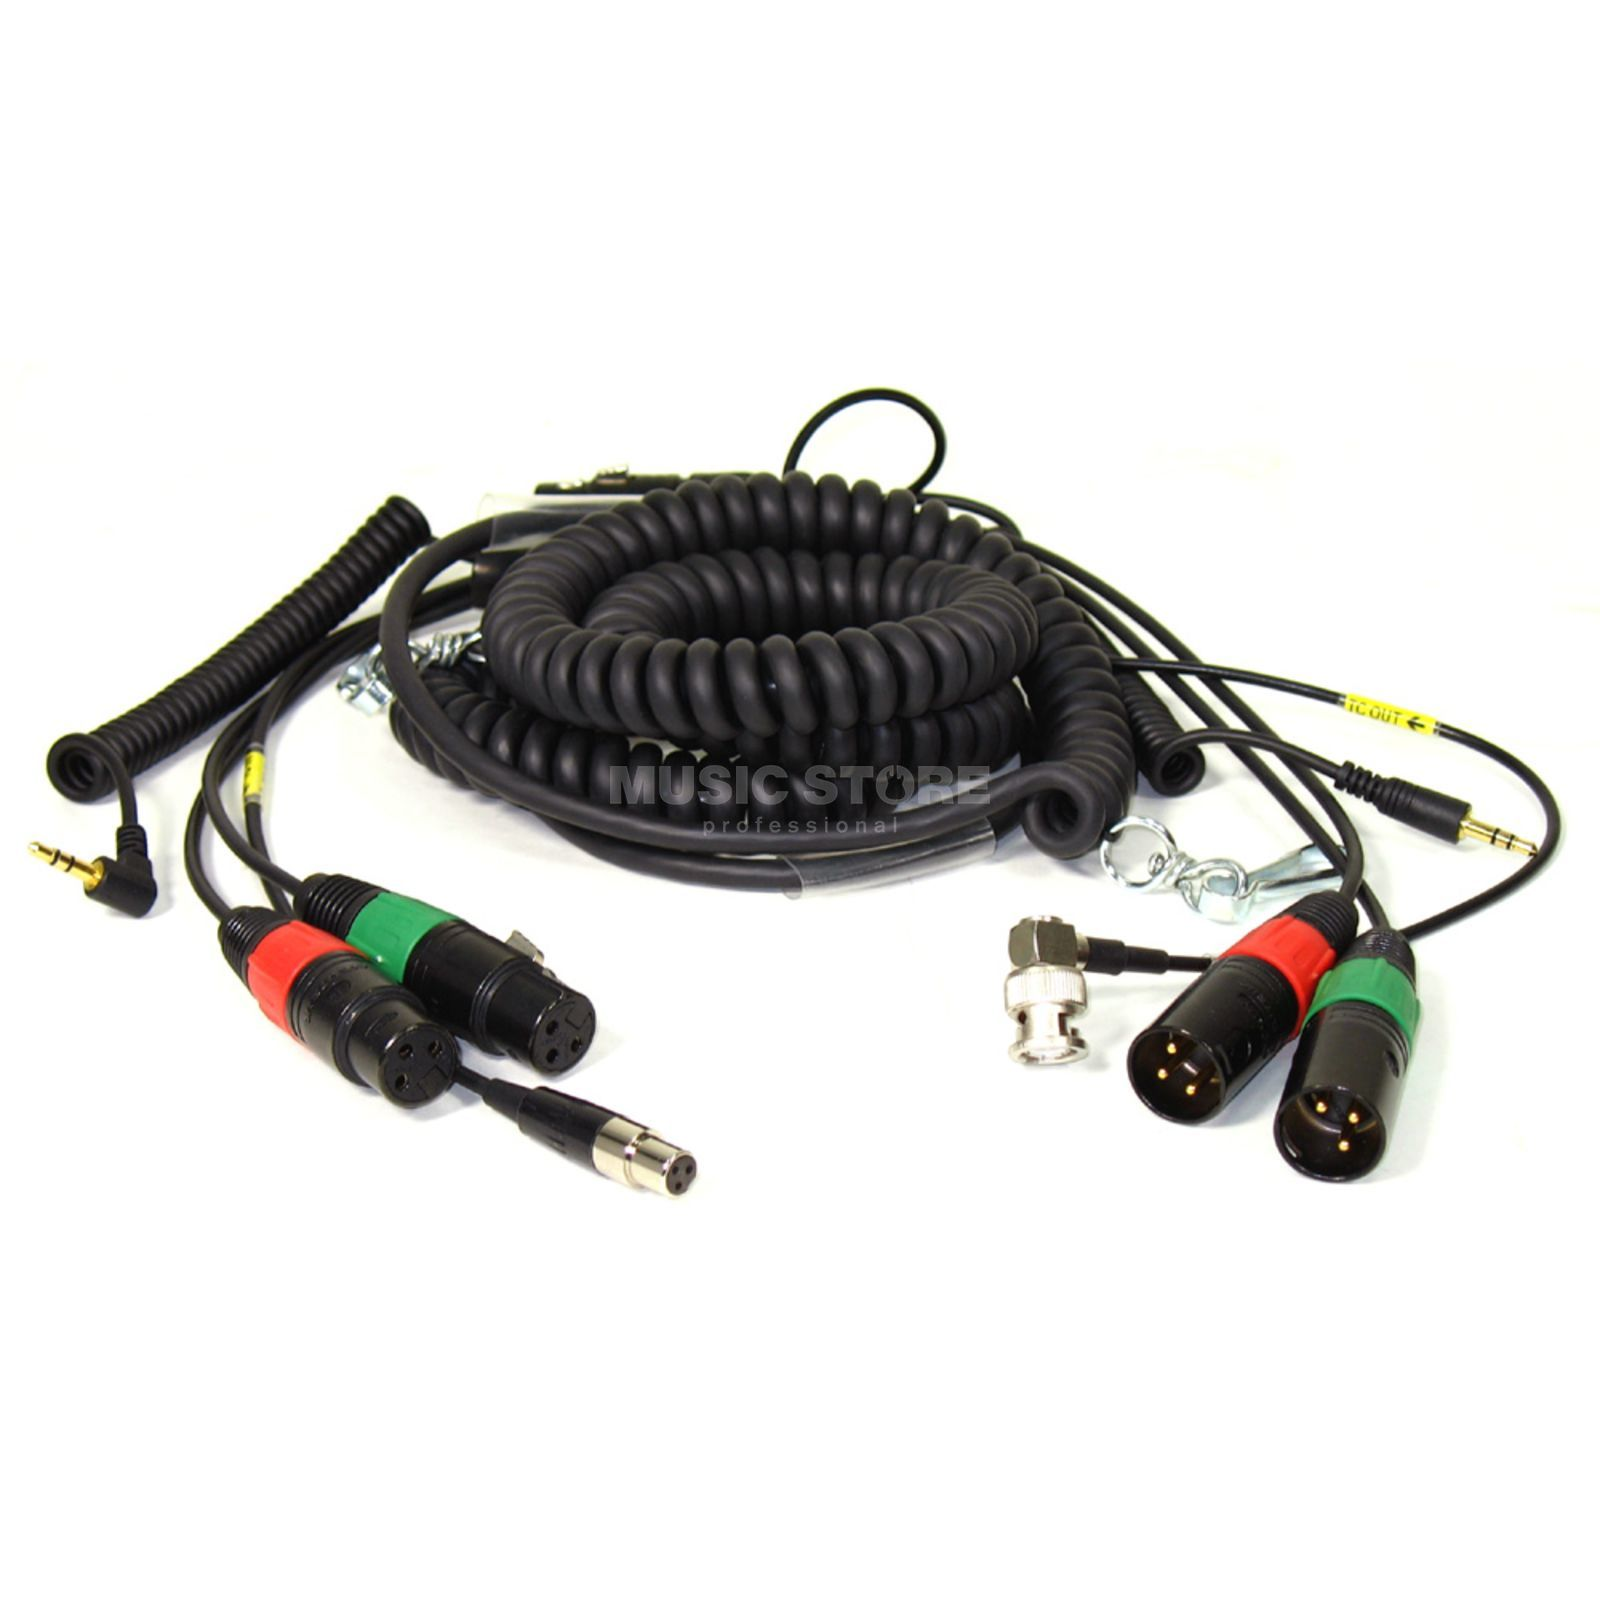 Sounddevices HBS552Y7-35 Spiral Cable for 552 with Timecode Produktbillede